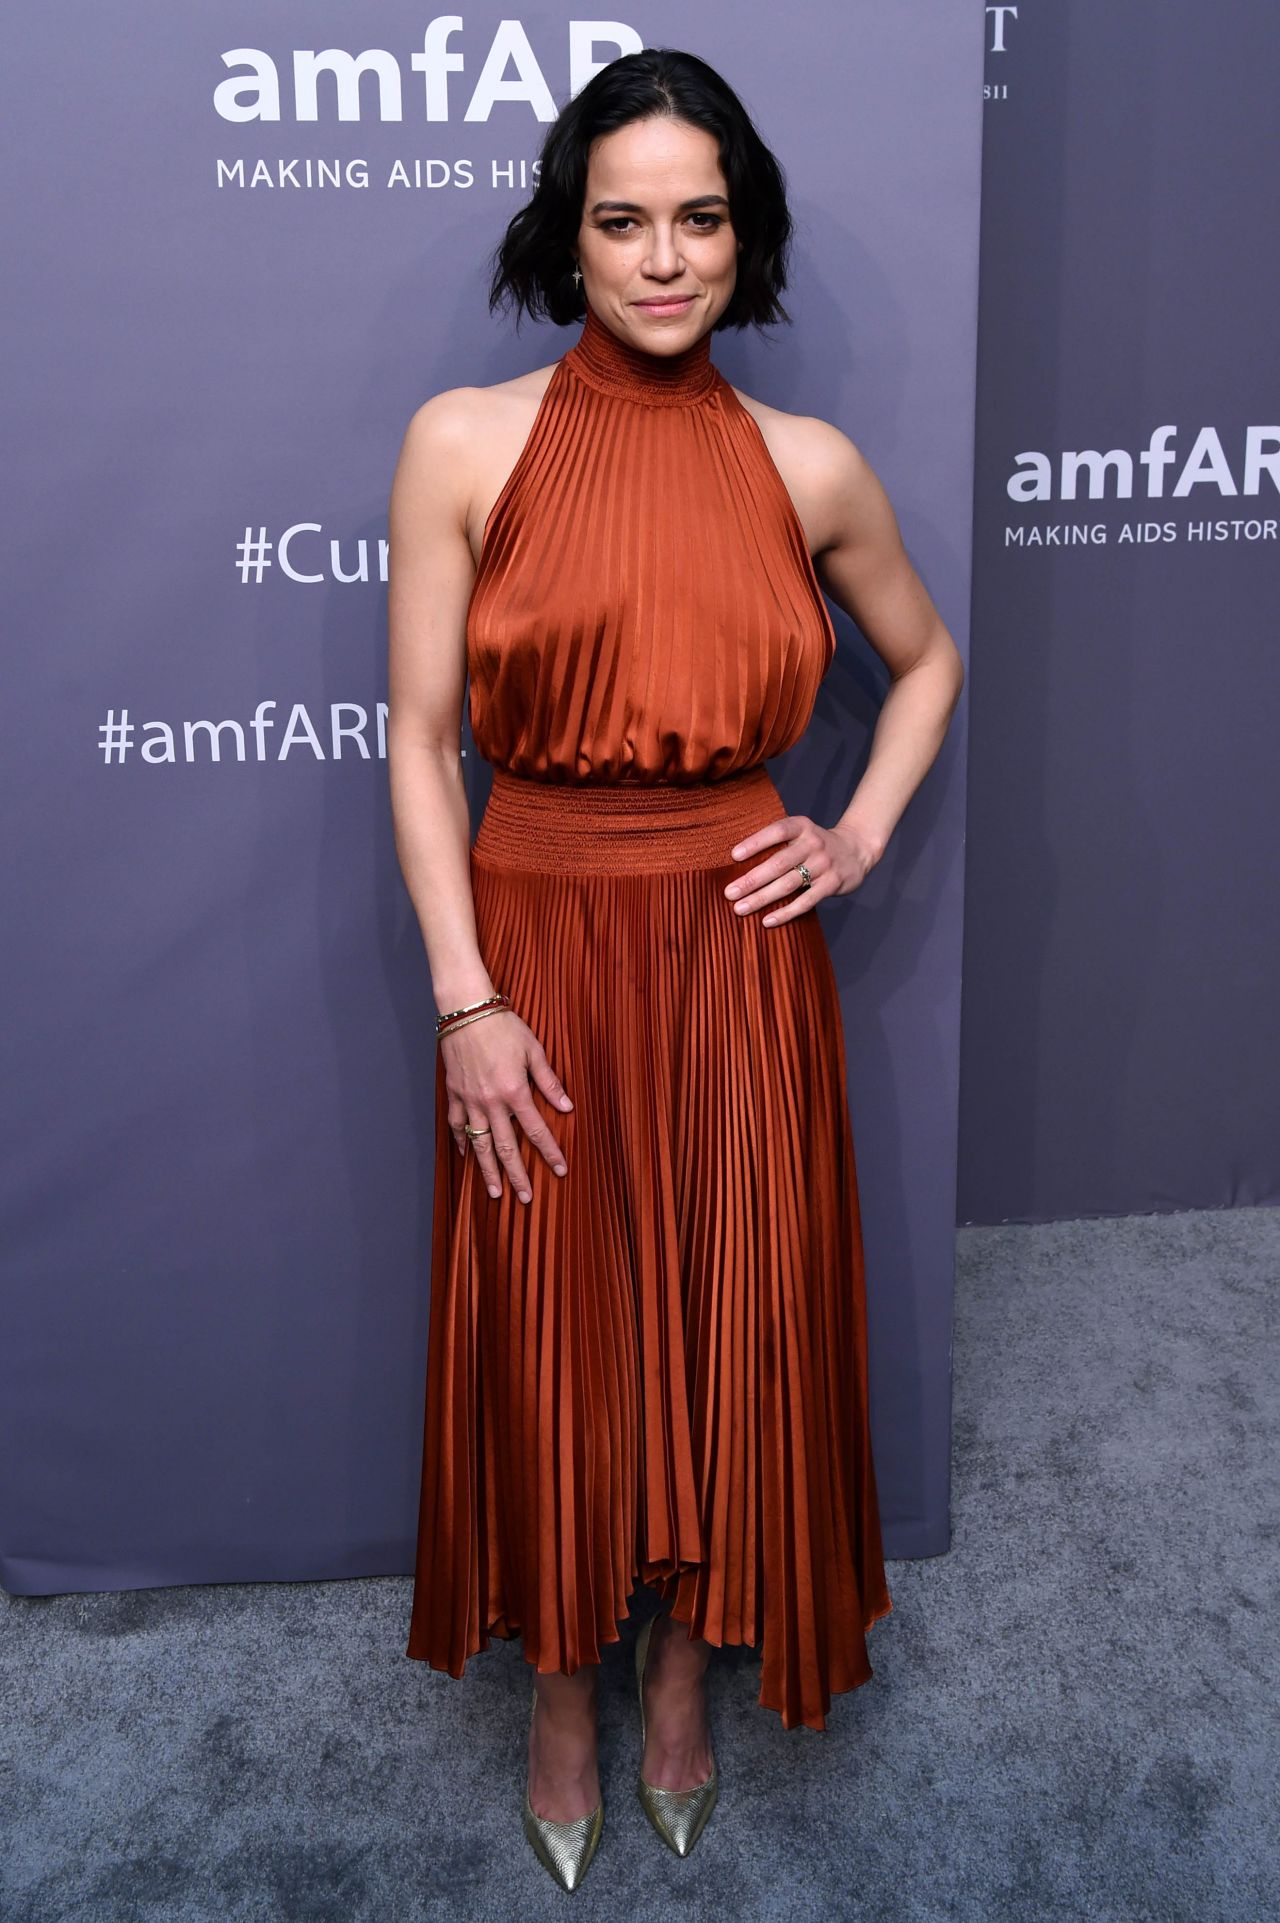 https://celebmafia.com/wp-content/uploads/2019/02/michelle-rodriguez-2019-amfar-gala-in-new-york-4.jpg